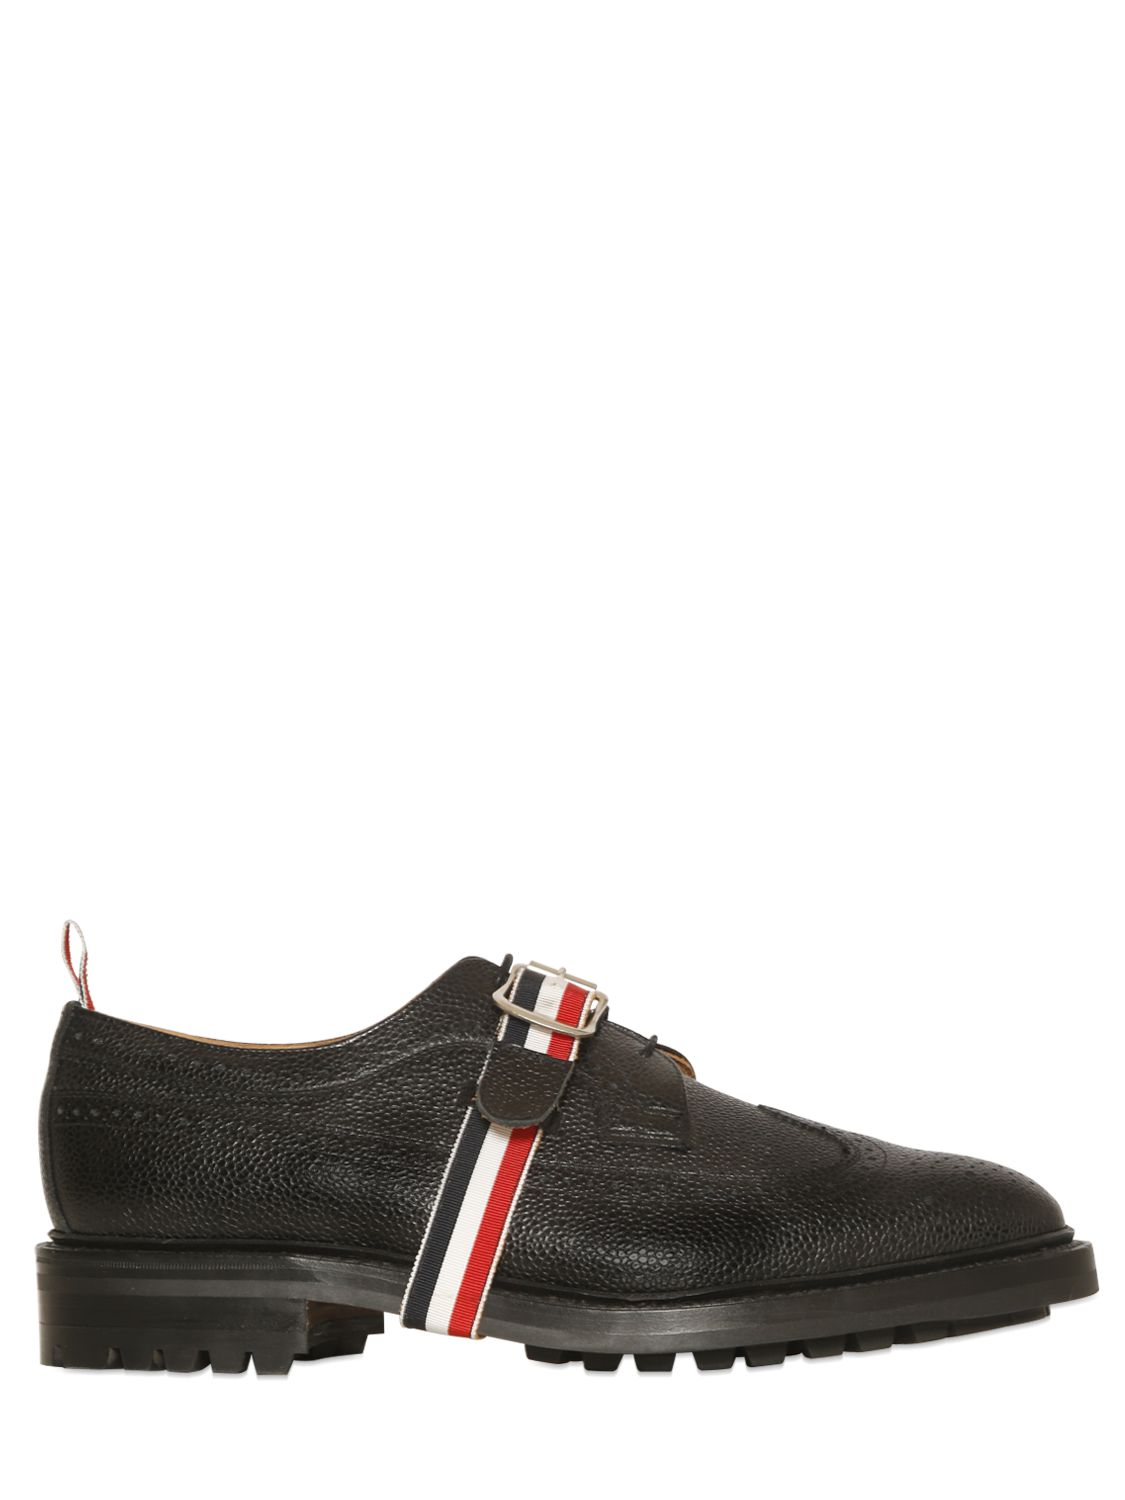 CHAUSSURES - Chaussures à lacetsThom Browne jvdPIkkCh